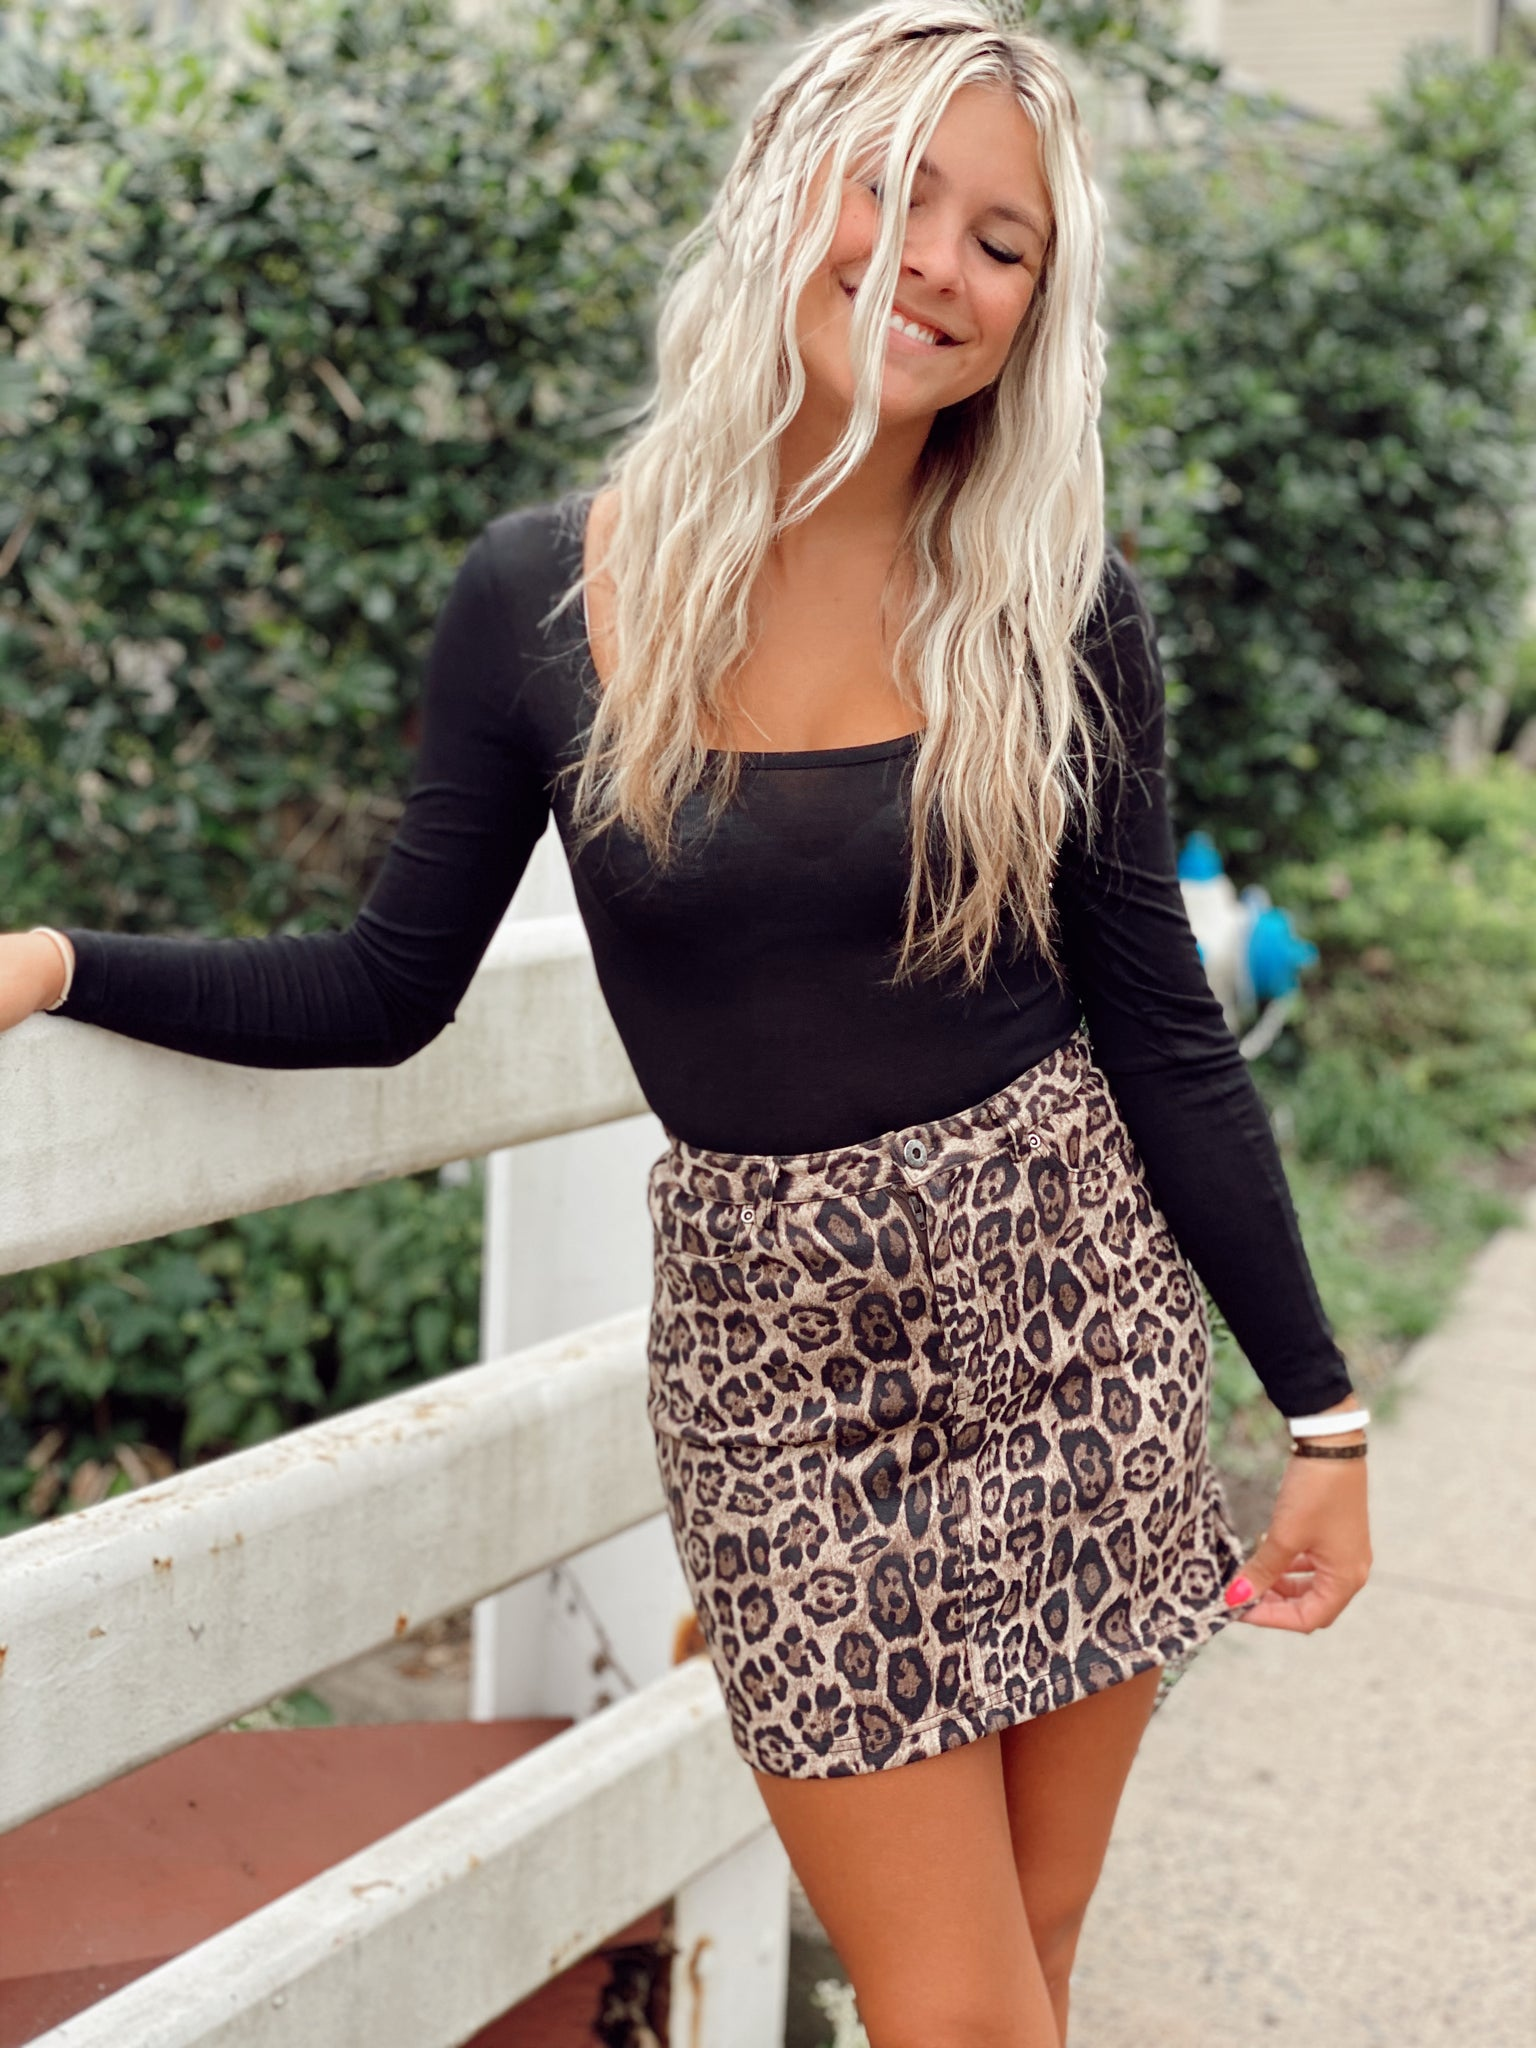 Chrishell Cheetah Skirt